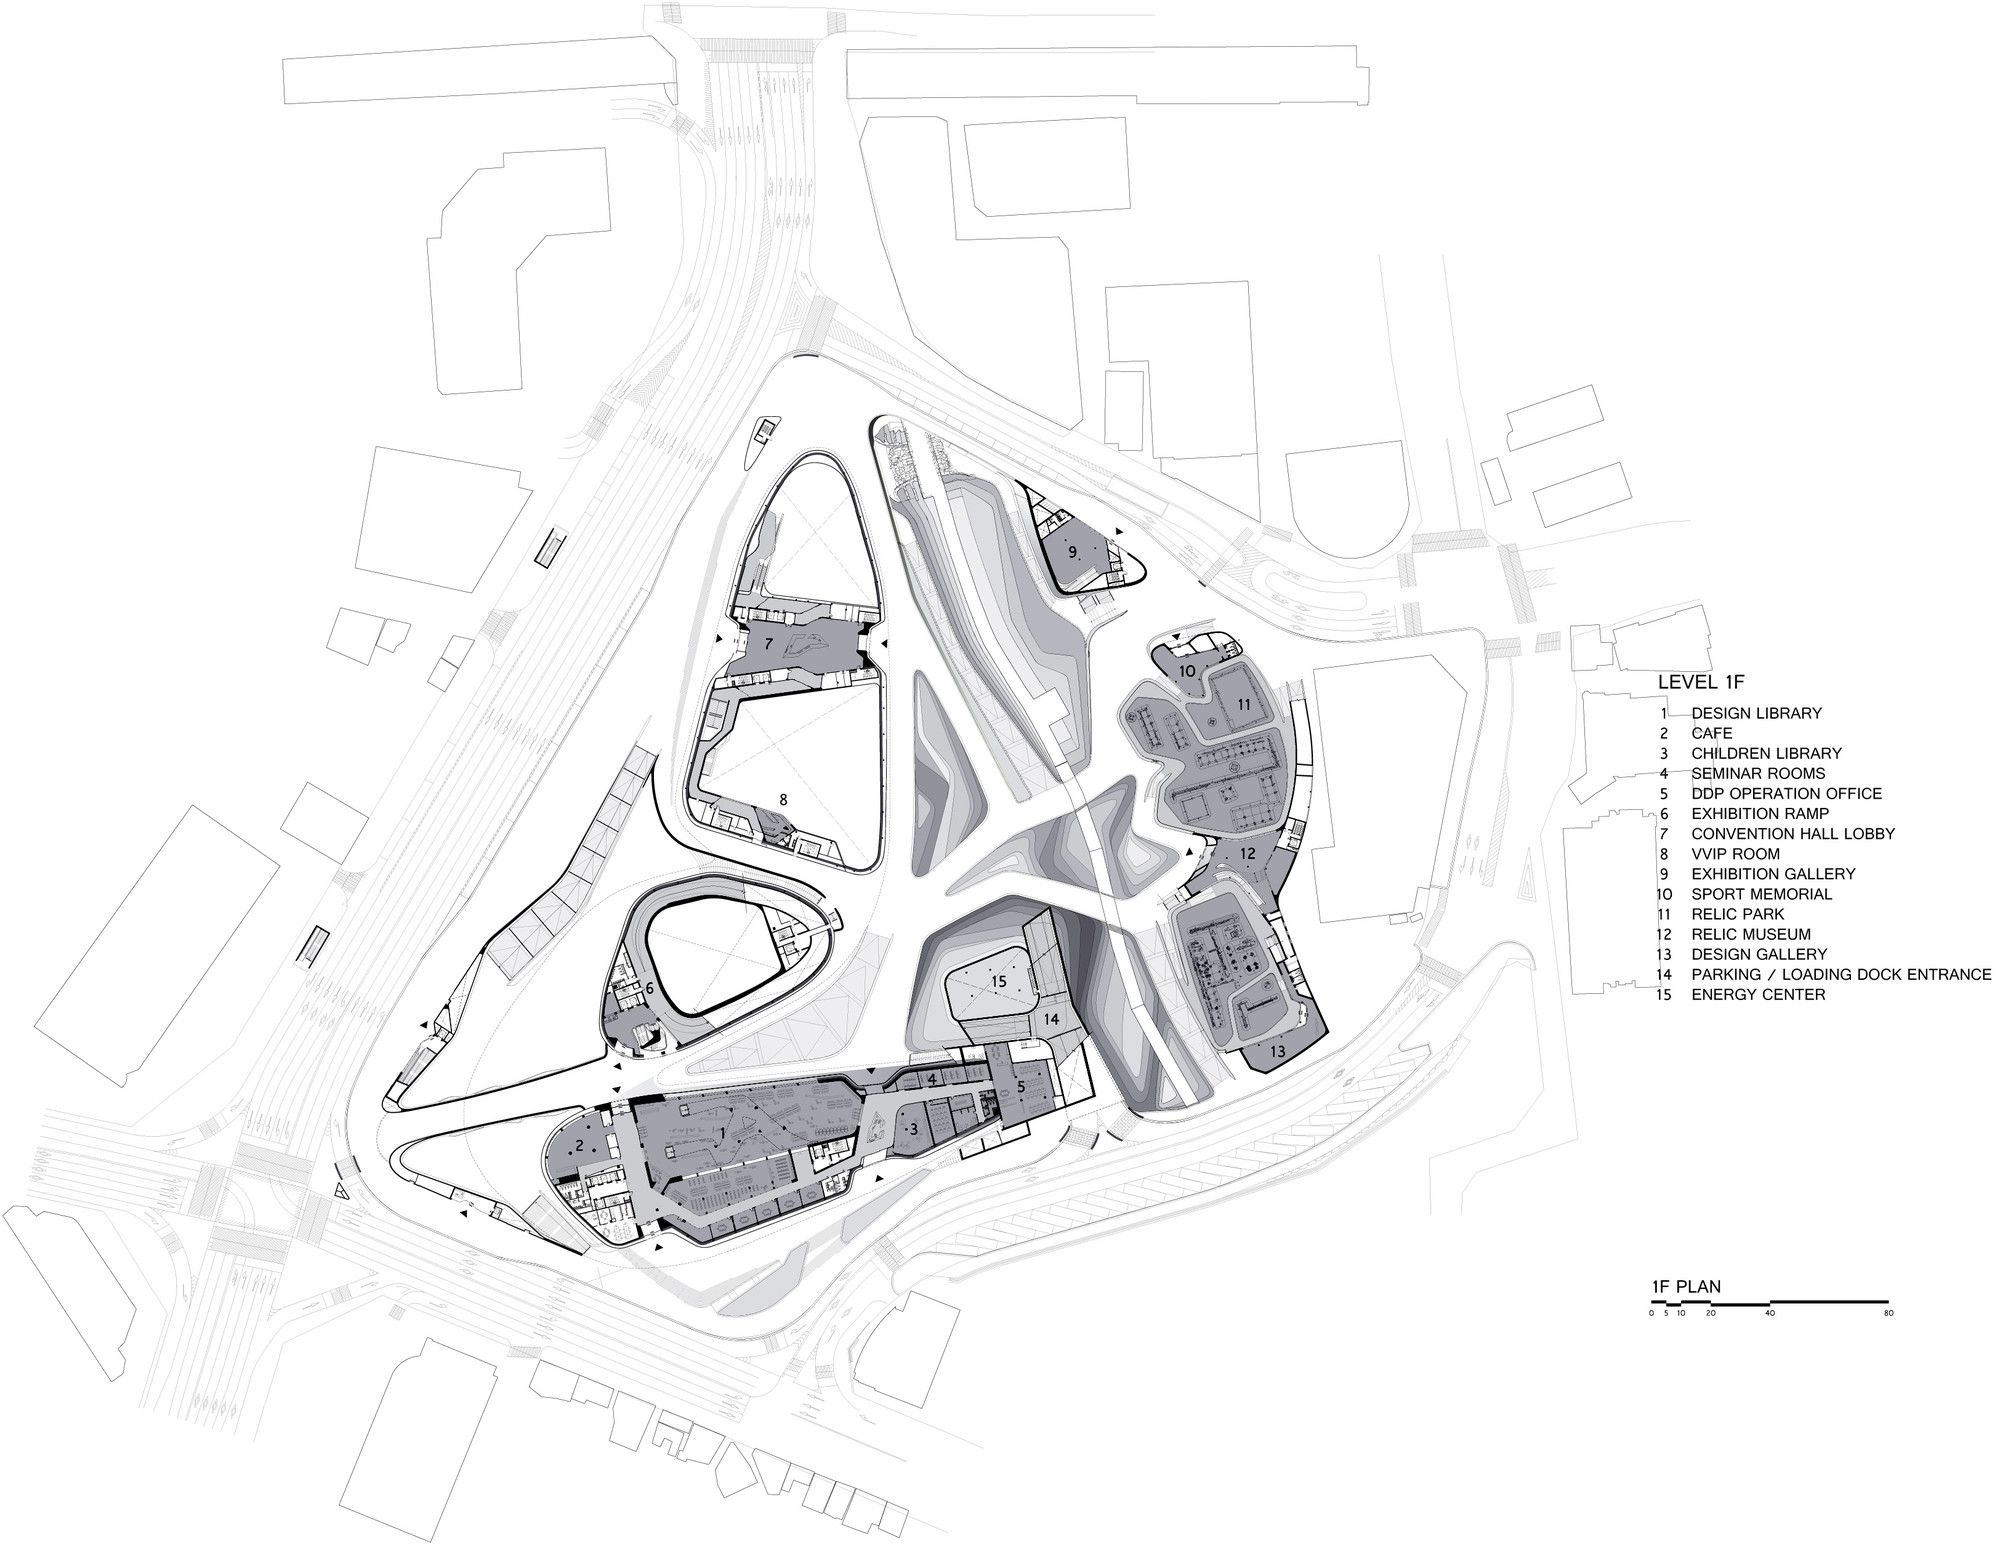 zaha hadid site plan Google Search Drawings Pinterest – Site Drawings For Site Plan